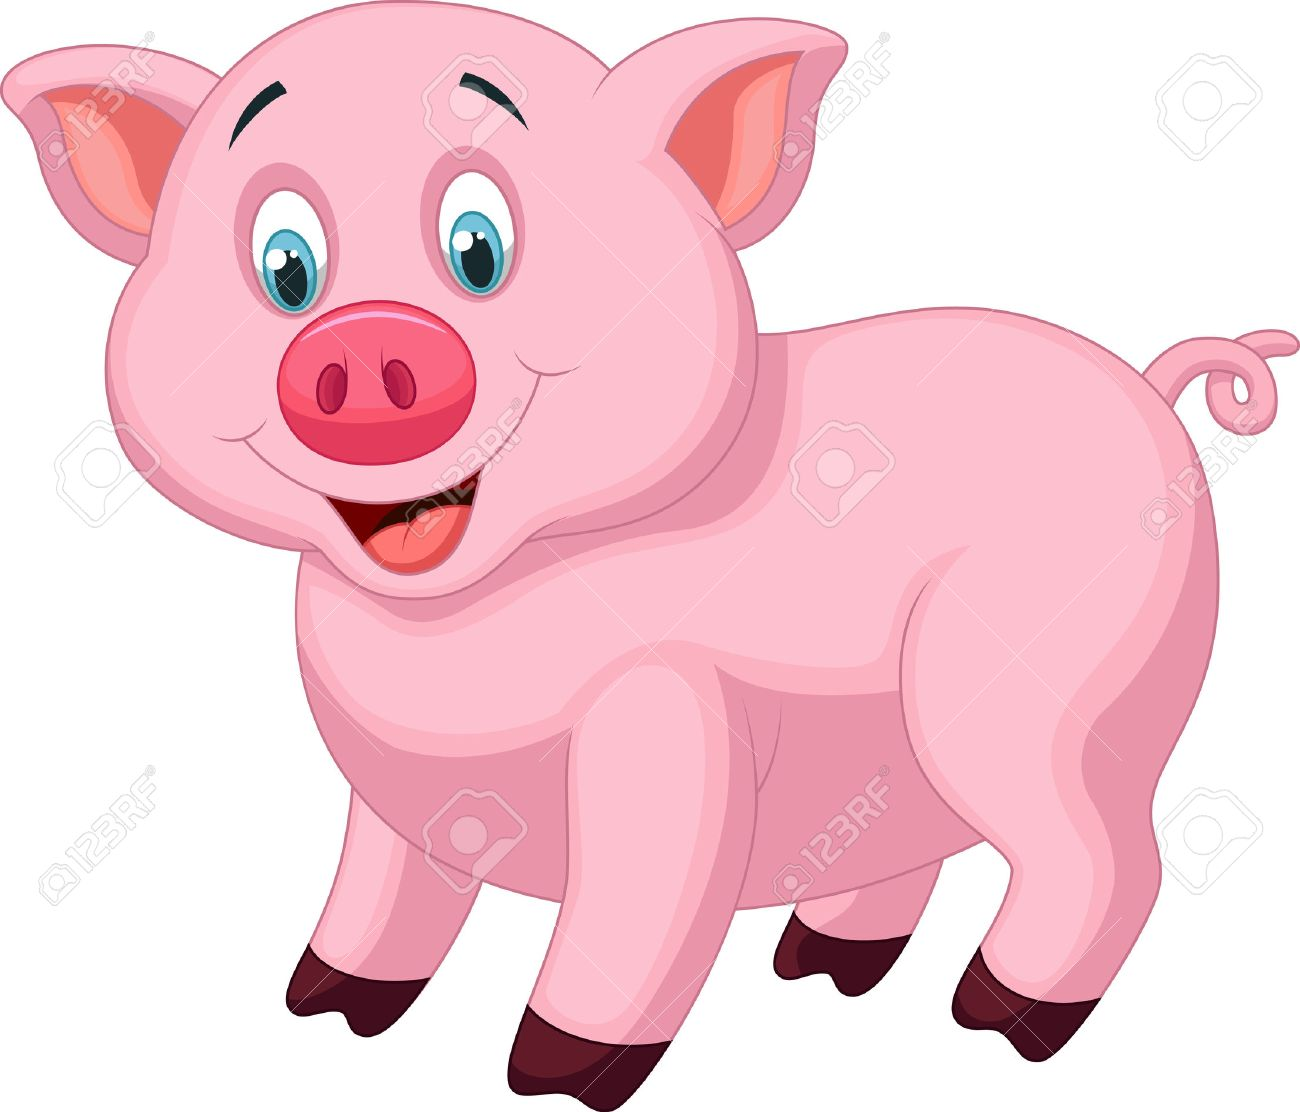 1300x1112 Pig Cartoon Image Best Of Cute Baby Royalty Free Cliparts Vectors